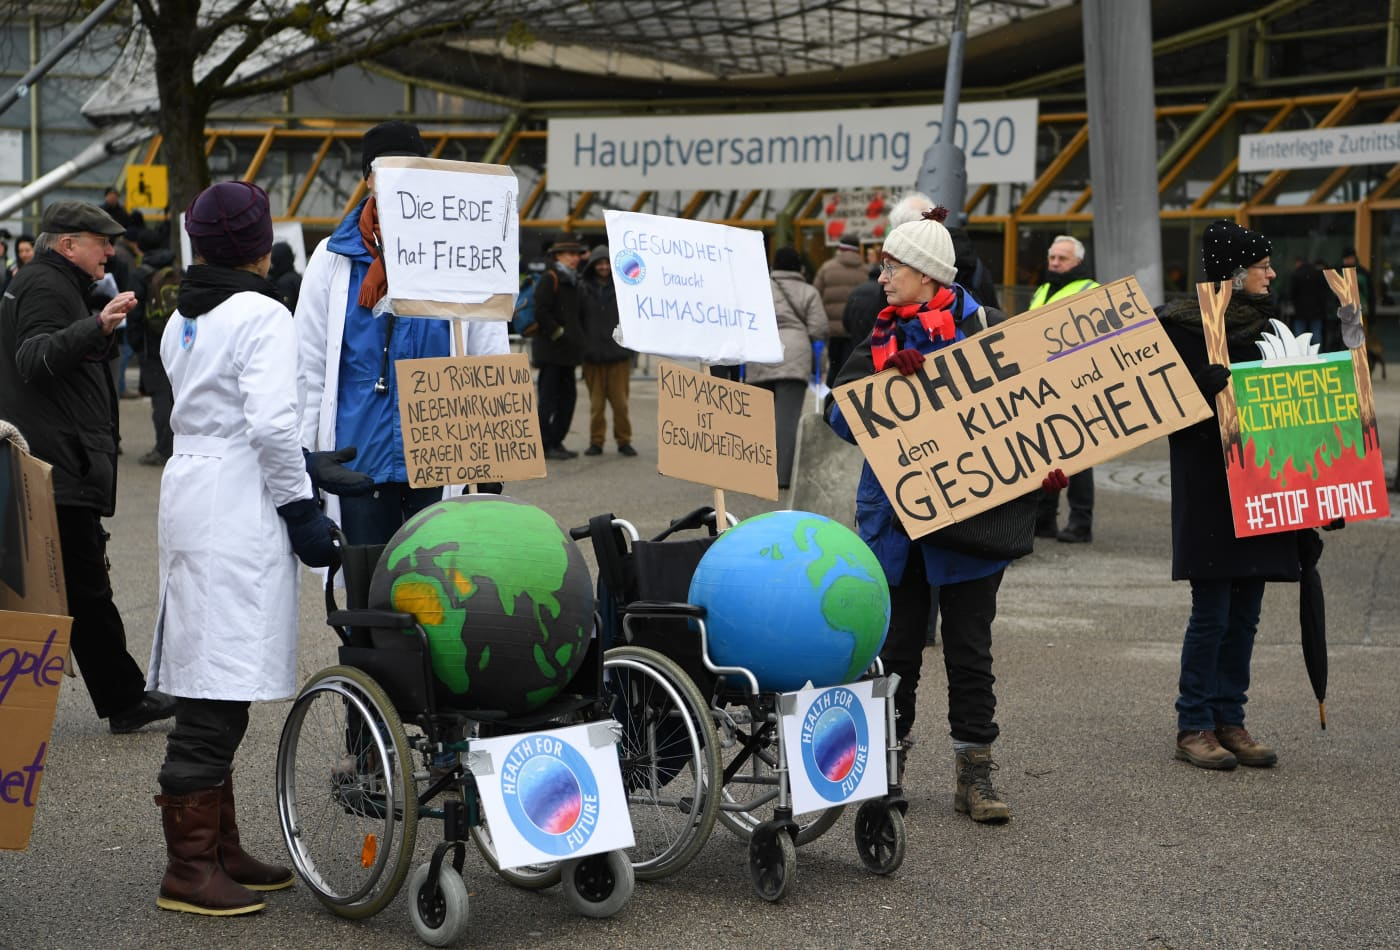 Siemens reports slight profit fall as climate activists target annual meeting